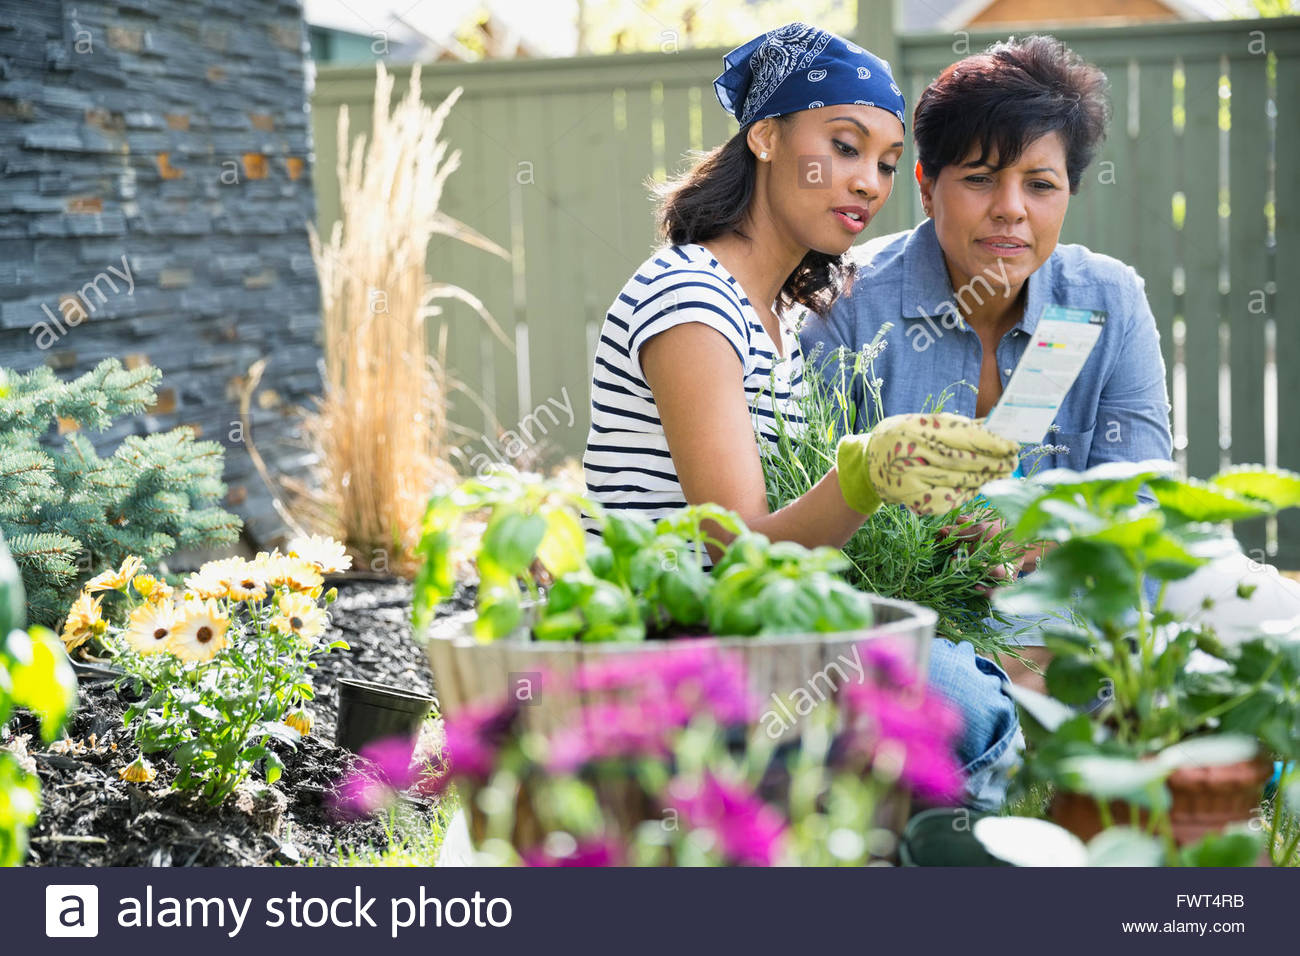 Mother and daughter reading instruction label while gardening - Stock Image